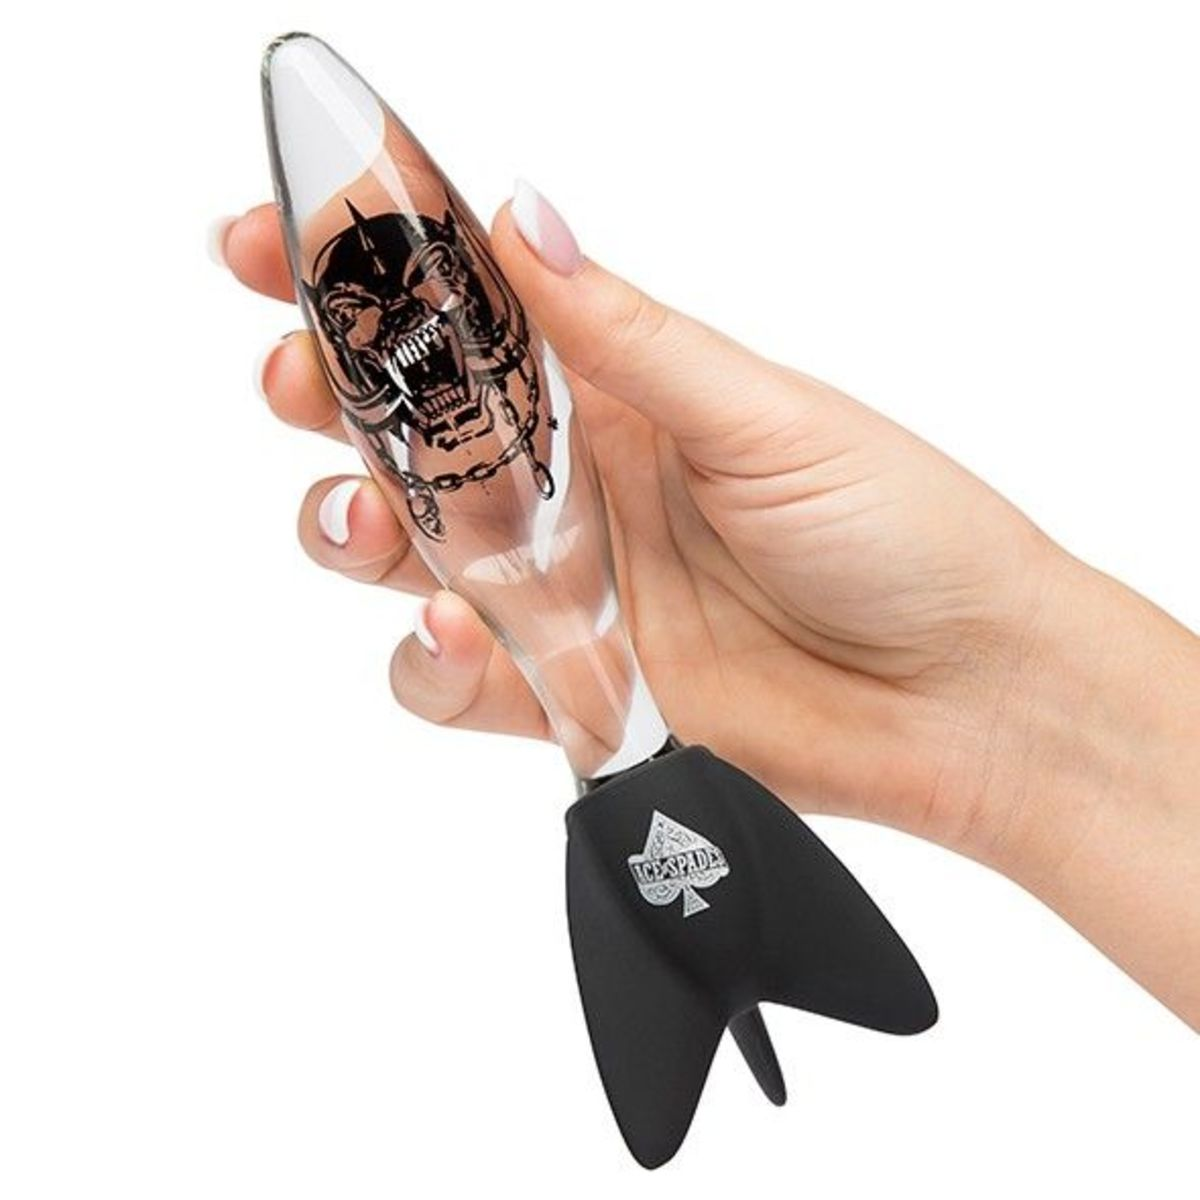 dildo Motörhead - Bomber Glass Clear - PLASTIC HEAD - MH-63530